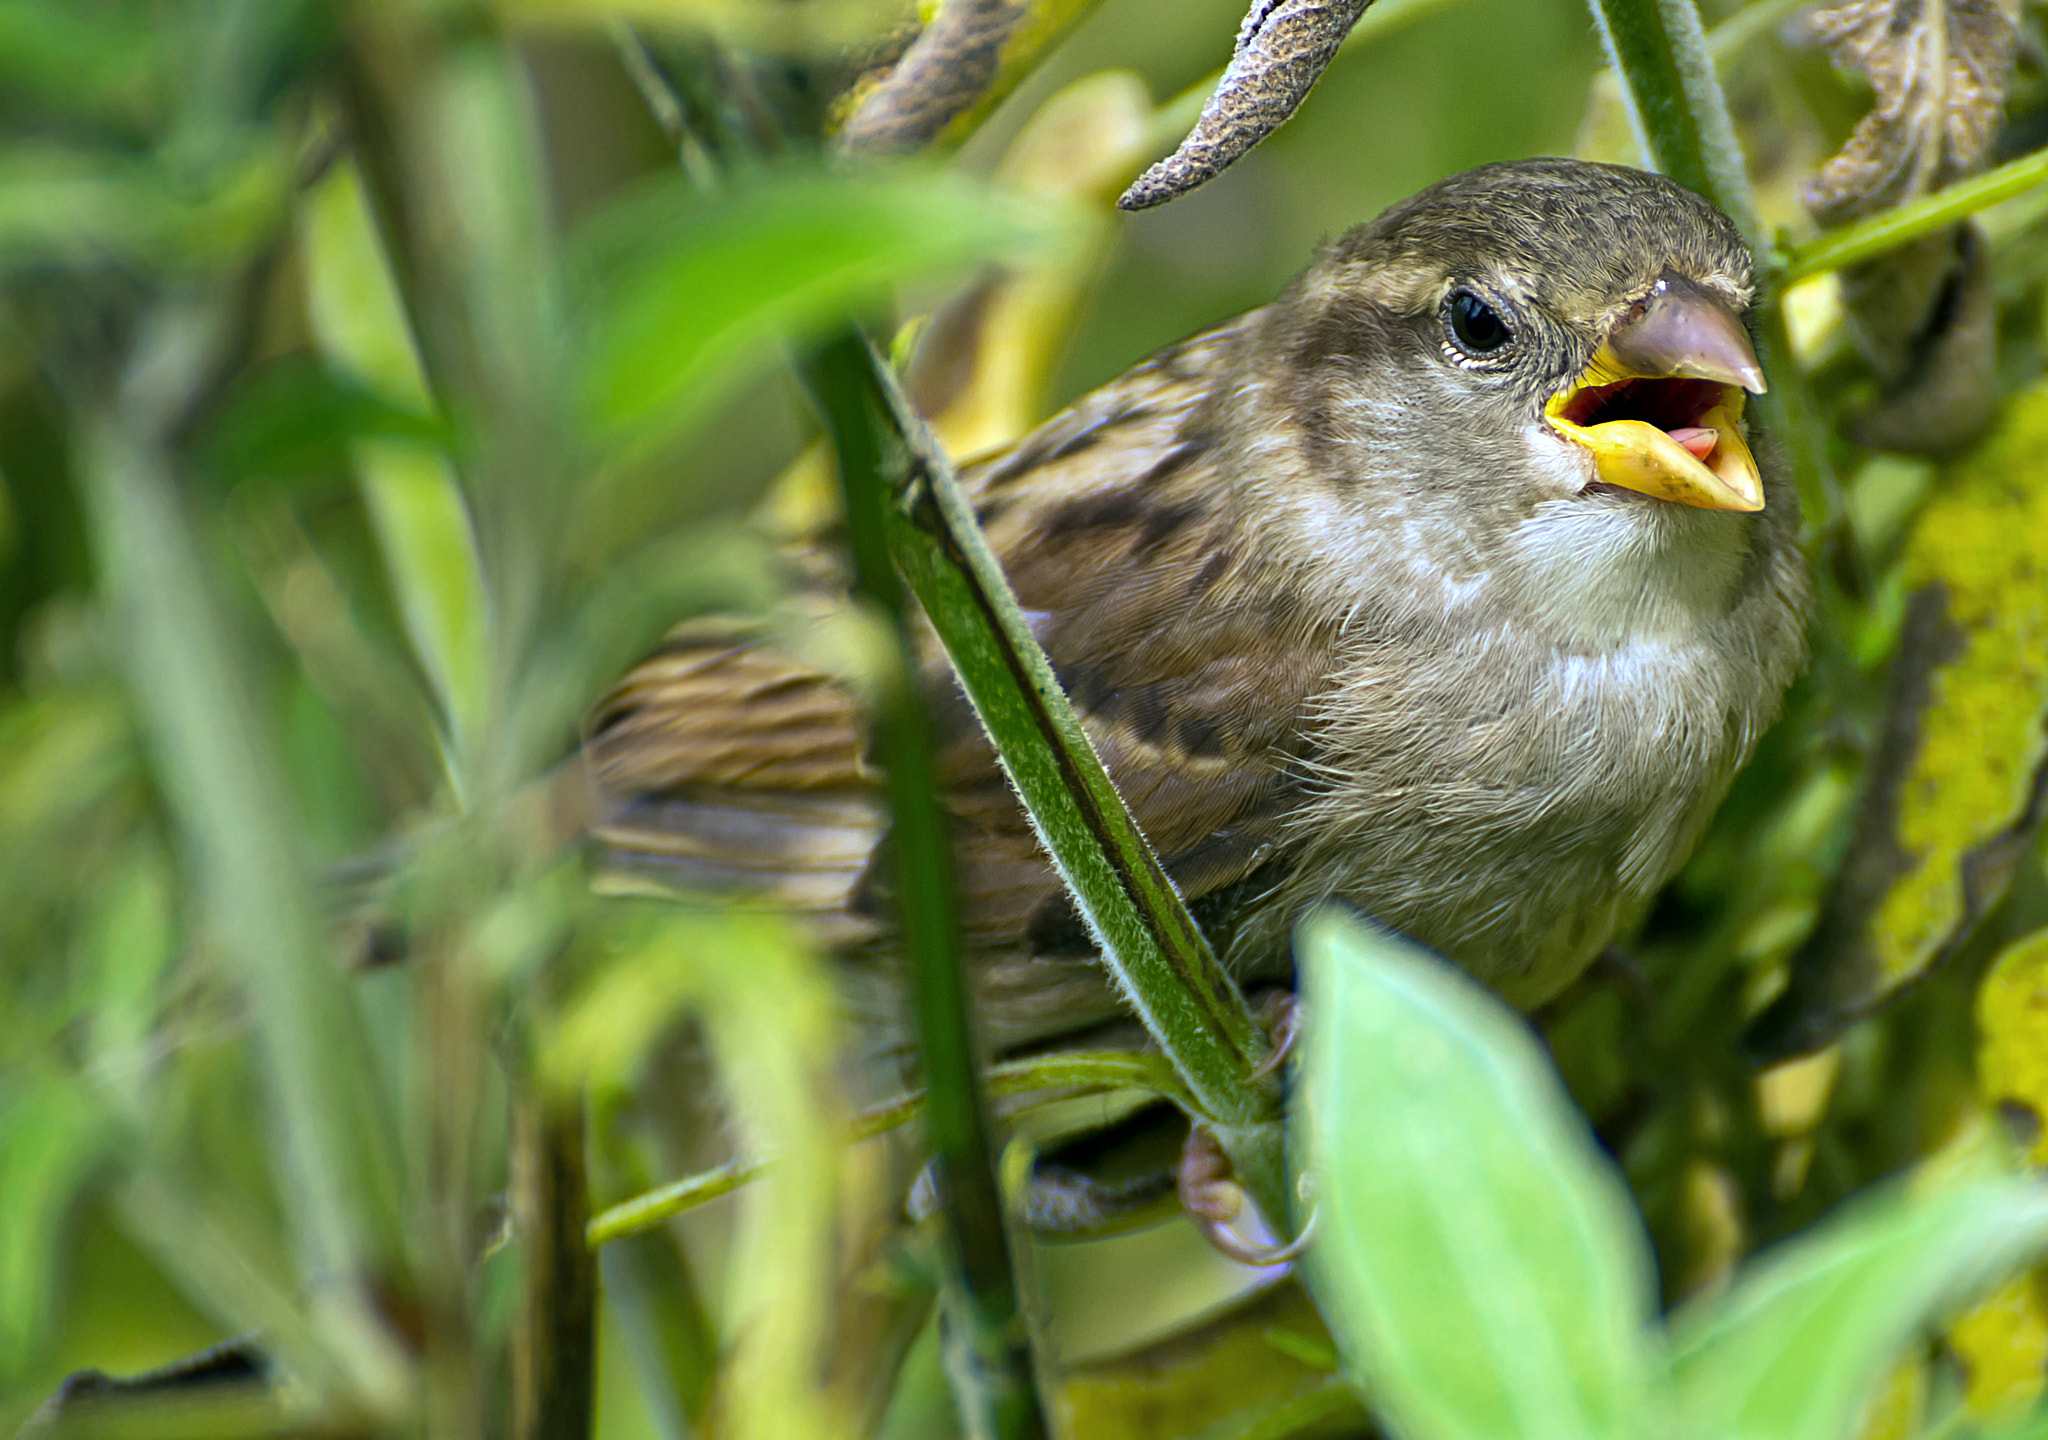 Photograph sparrow 2 by DAVID GAHAN on 500px